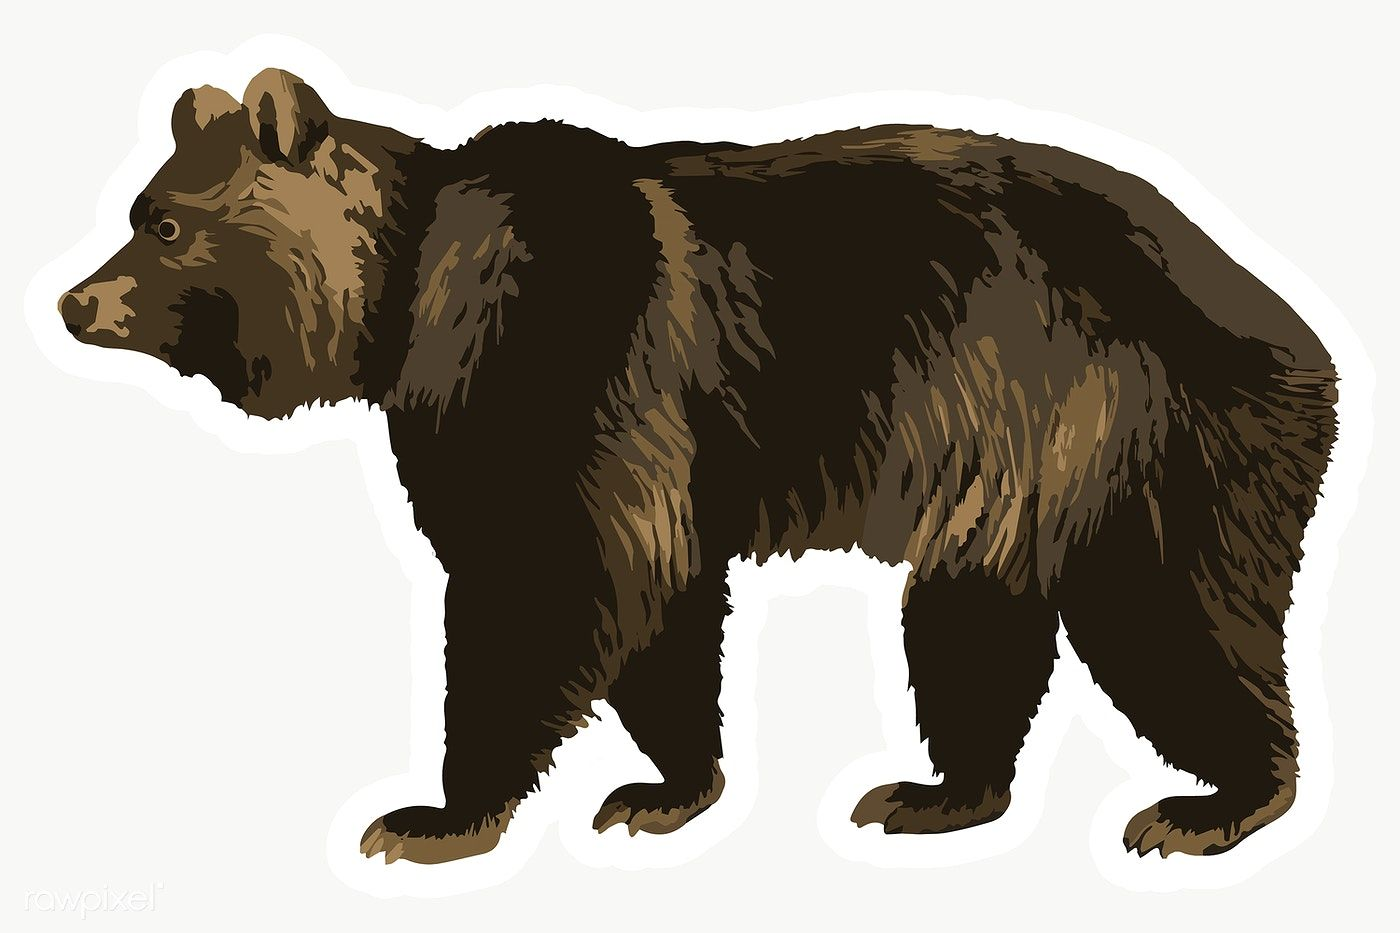 Vectorized Grizzly Bear Sticker Overlay Design Element Free Image By Rawpixel Com Aew Grizzly Bear Grizzly Animals Wild